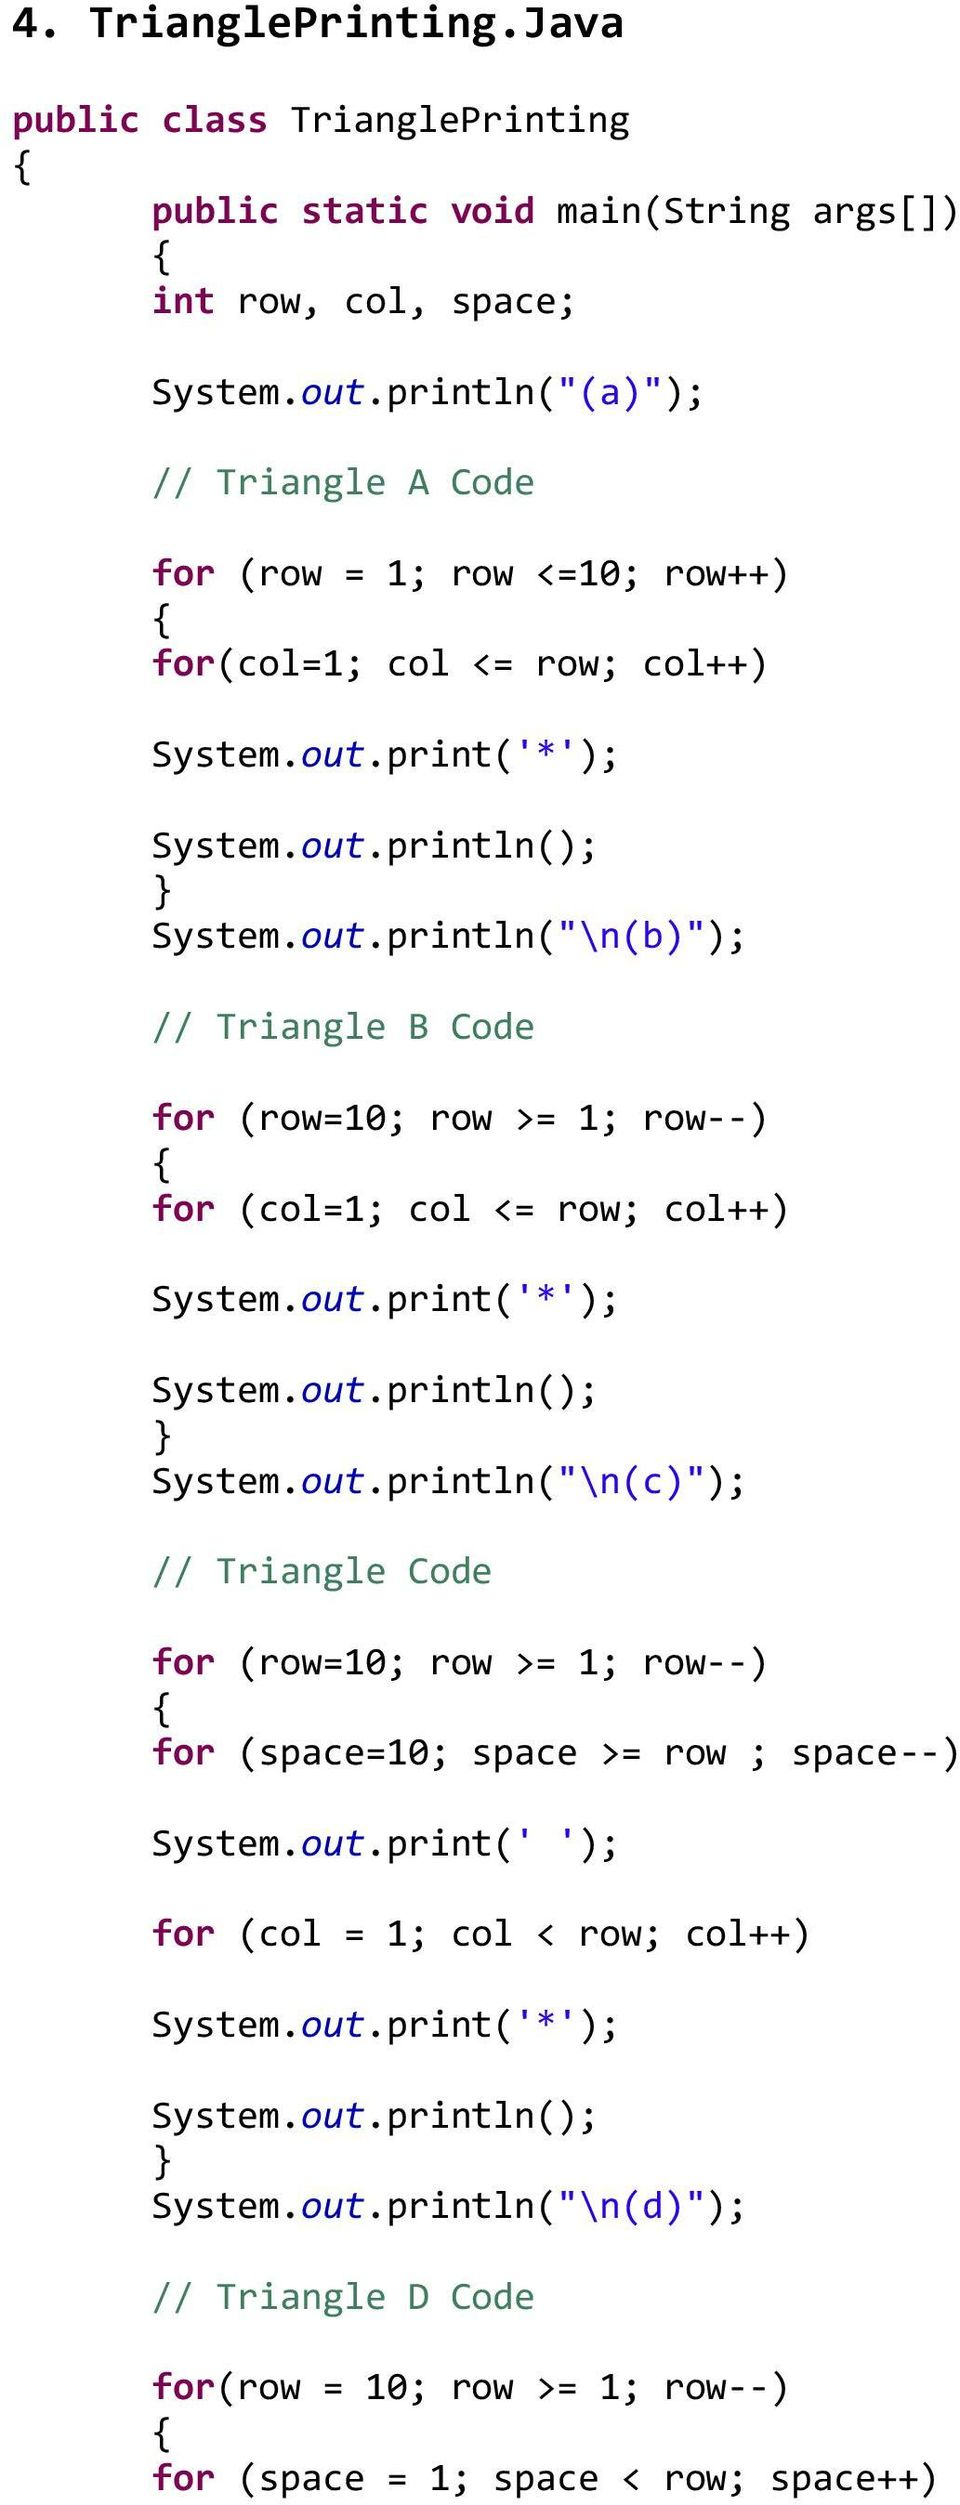 print('*'); System.out.println(""\n(b)""); // Triangle B Code for (row=10; row >= 1; row--) for (col=1; col <= row; col++) System.out.print('*'); System.out.println(""\n(c)""); // Triangle Code for (row=10; row >= 1; row--) for (space=10; space >= row ; space--) System.9602505|?|0508c0b2db96995c3206d50857ed129e|False|UNLIKELY|0.3321760892868042